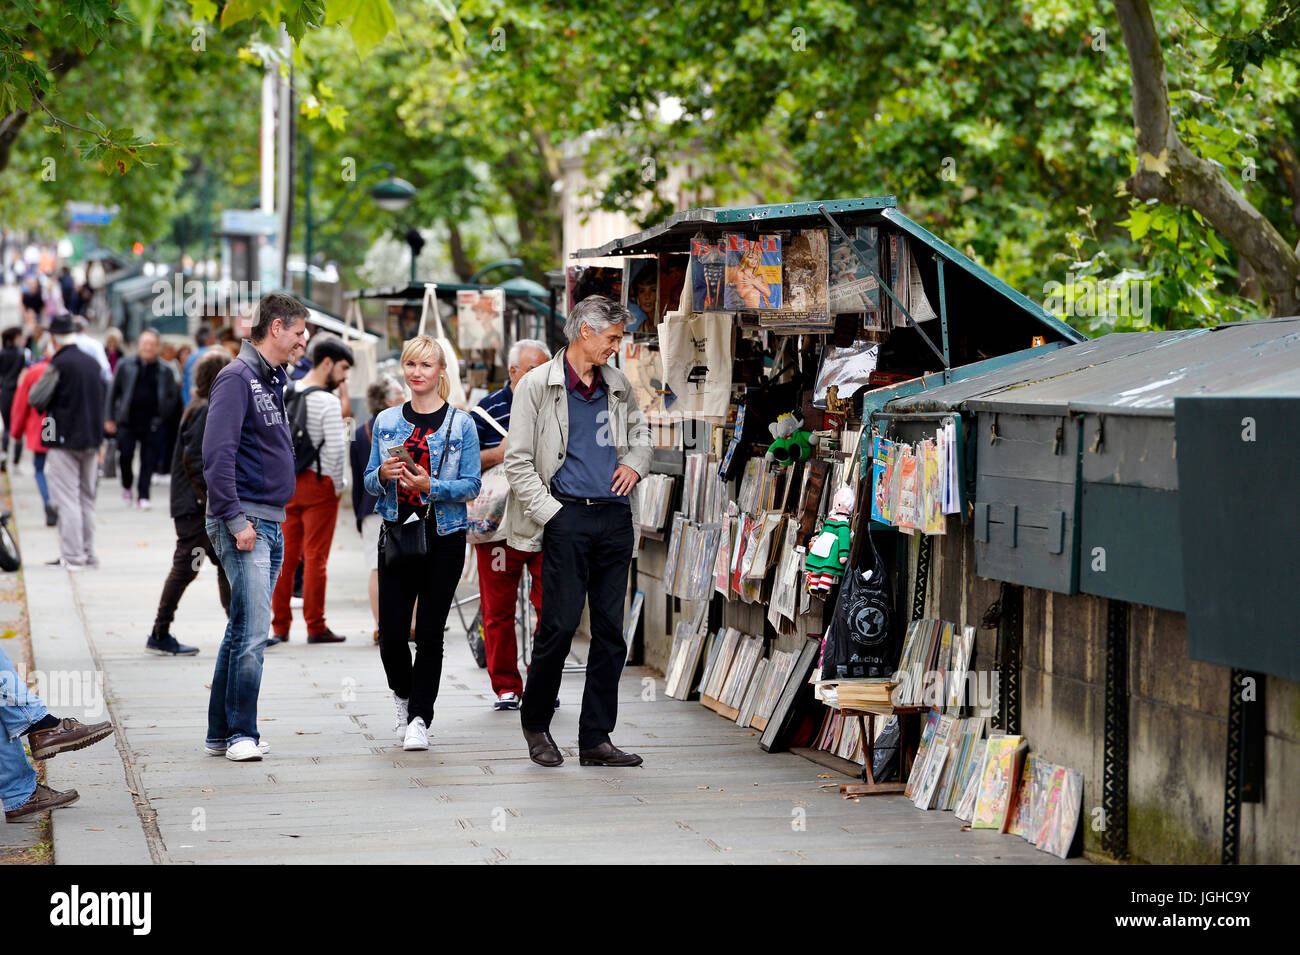 Second hand dealer on the seine bank, Paris, France - Stock Image